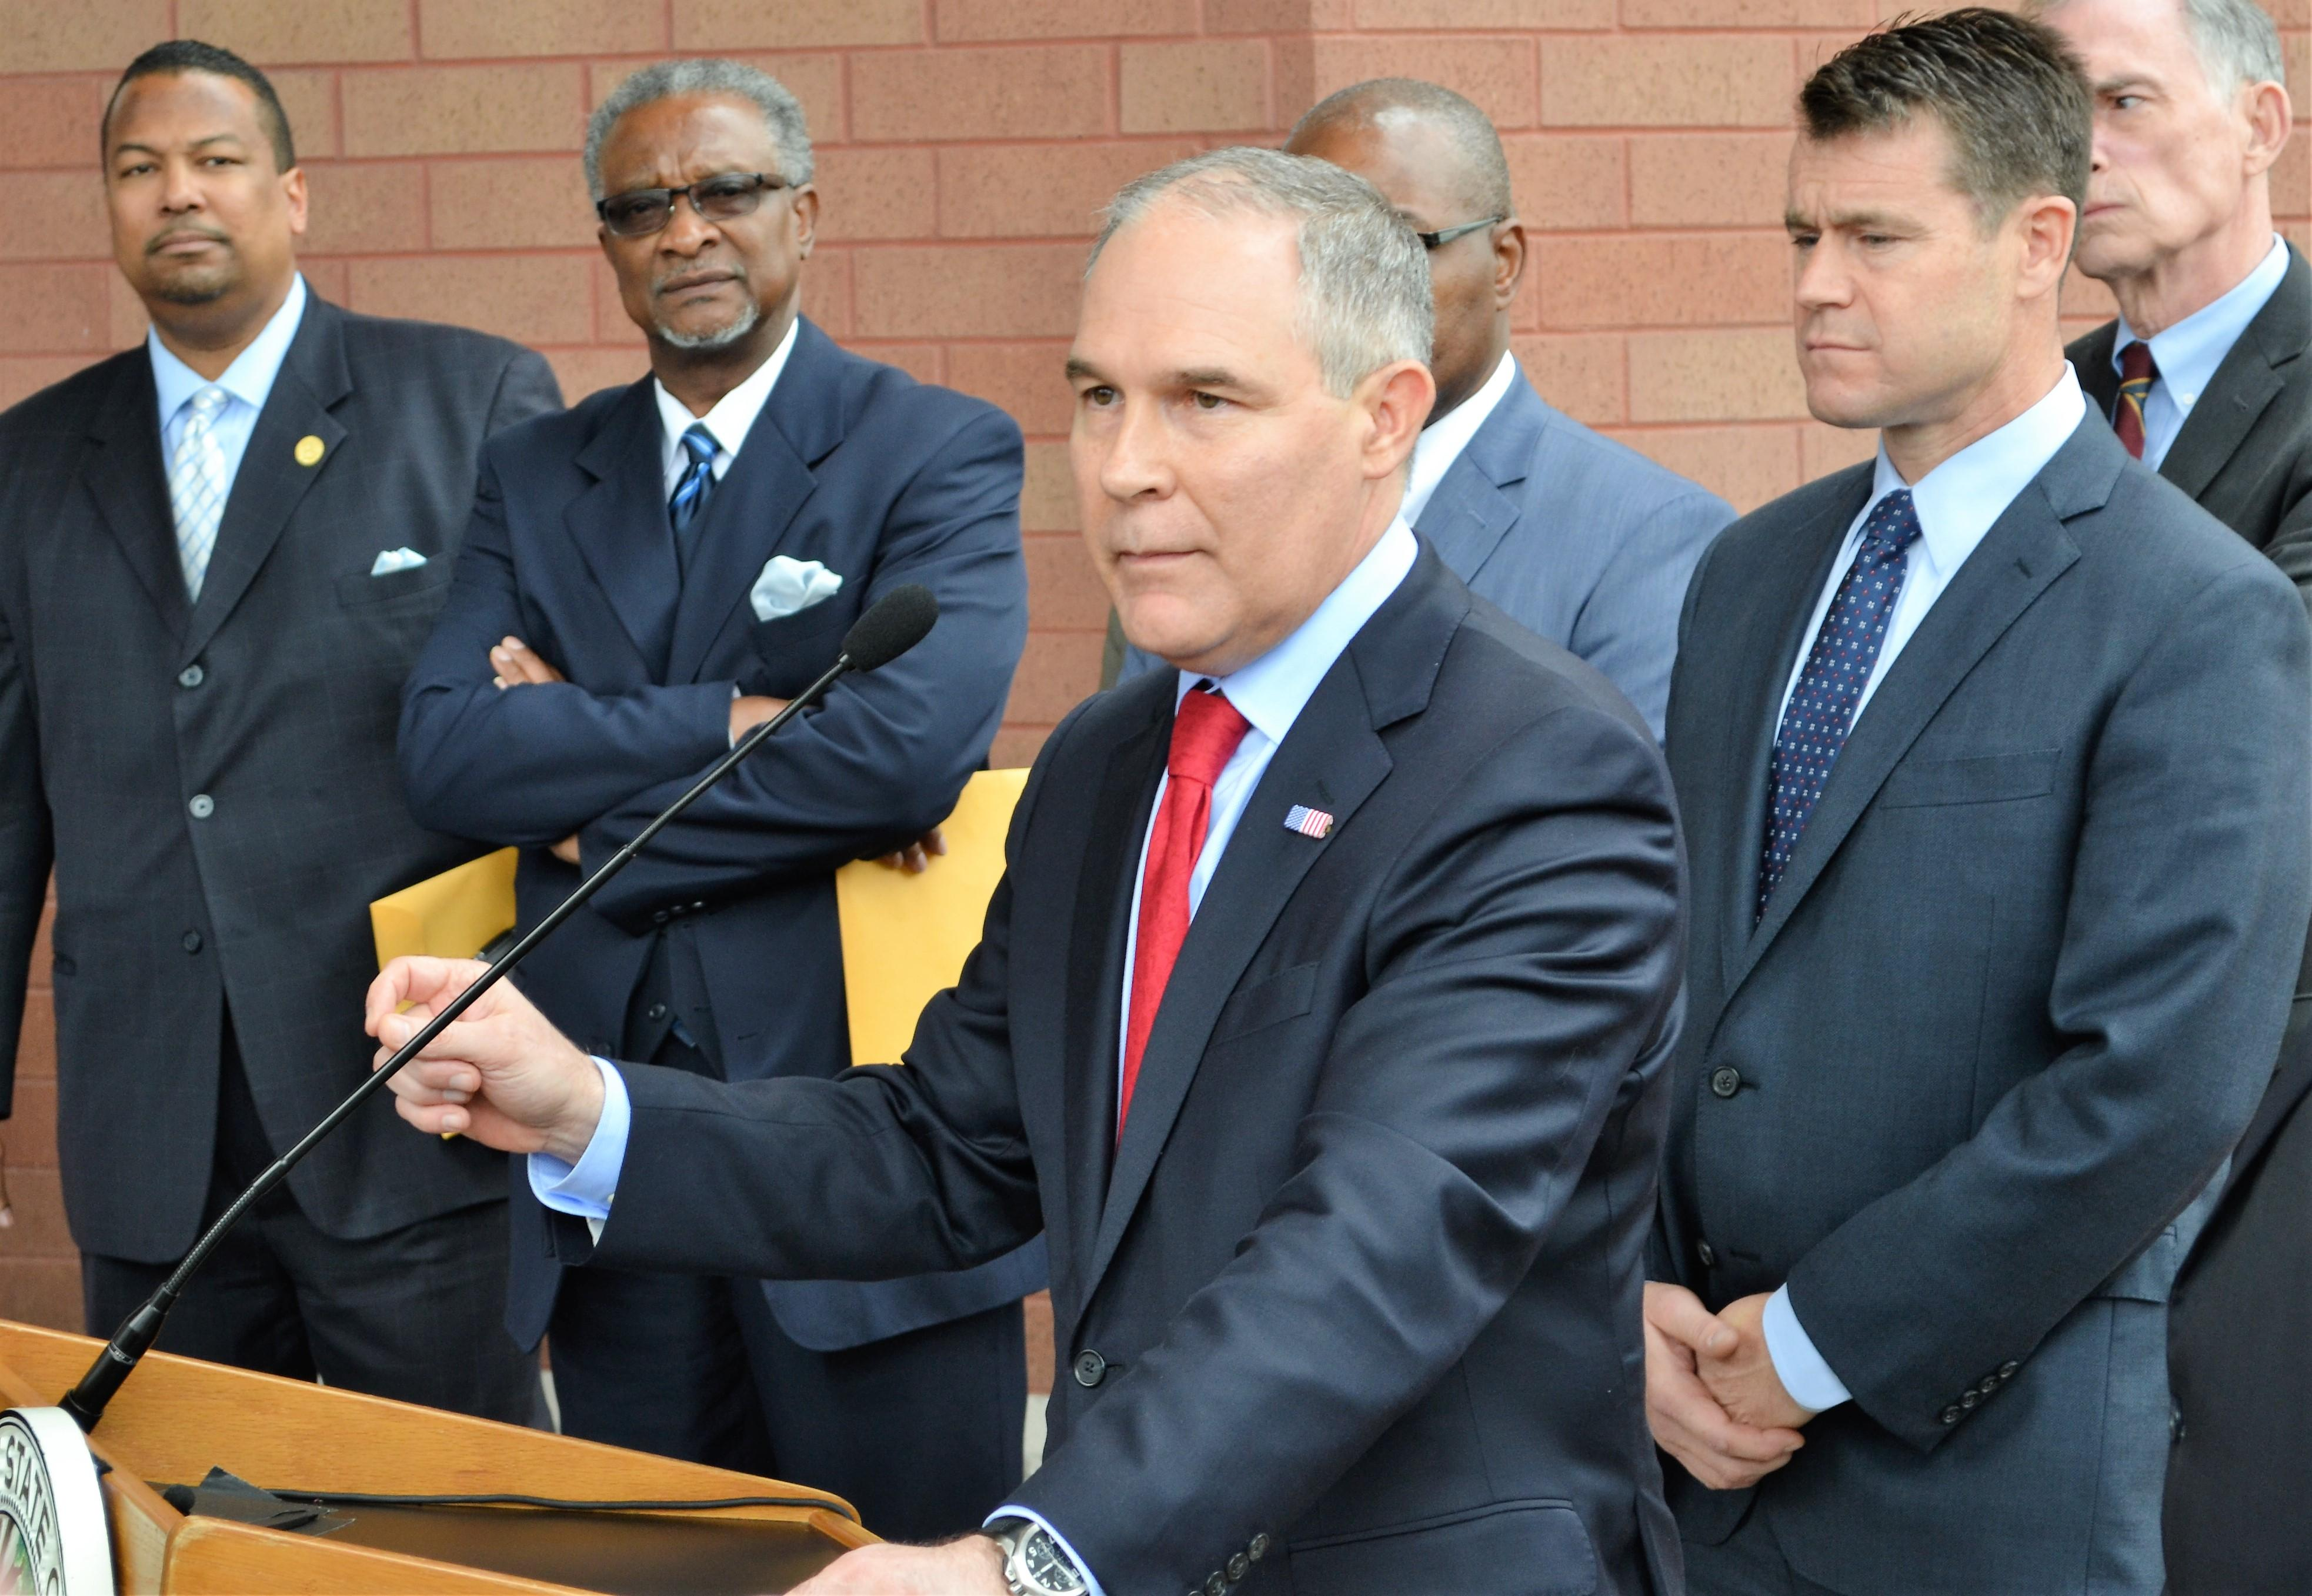 EPA Administrator Scott Pruitt speaks April 19 after meeting with residents of lead-contaminated neighborhoods in East Chicago. (Alex Ruppenthal / Chicago Tonight)